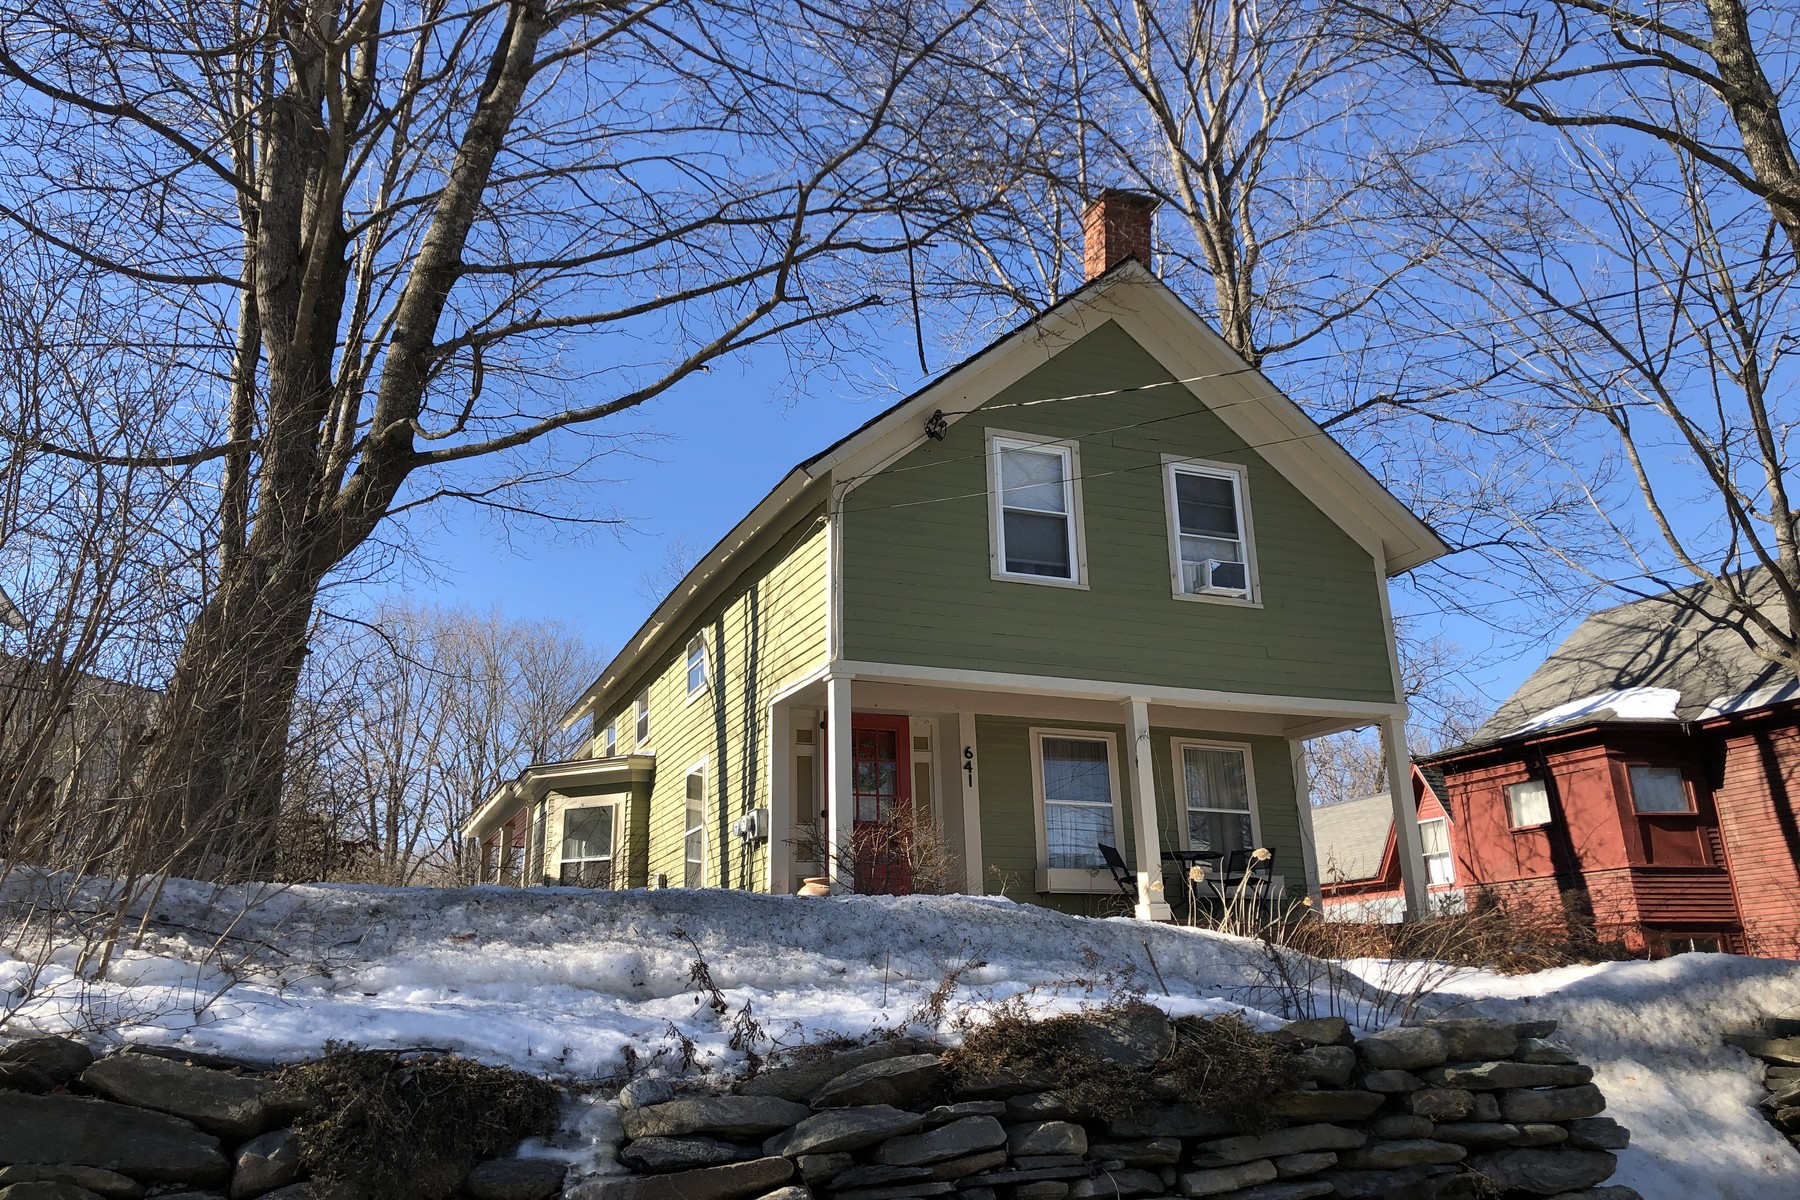 Single Family Home for Sale at 641 Depot Street, Chester 641 Depot St Chester, Vermont 05143 United States